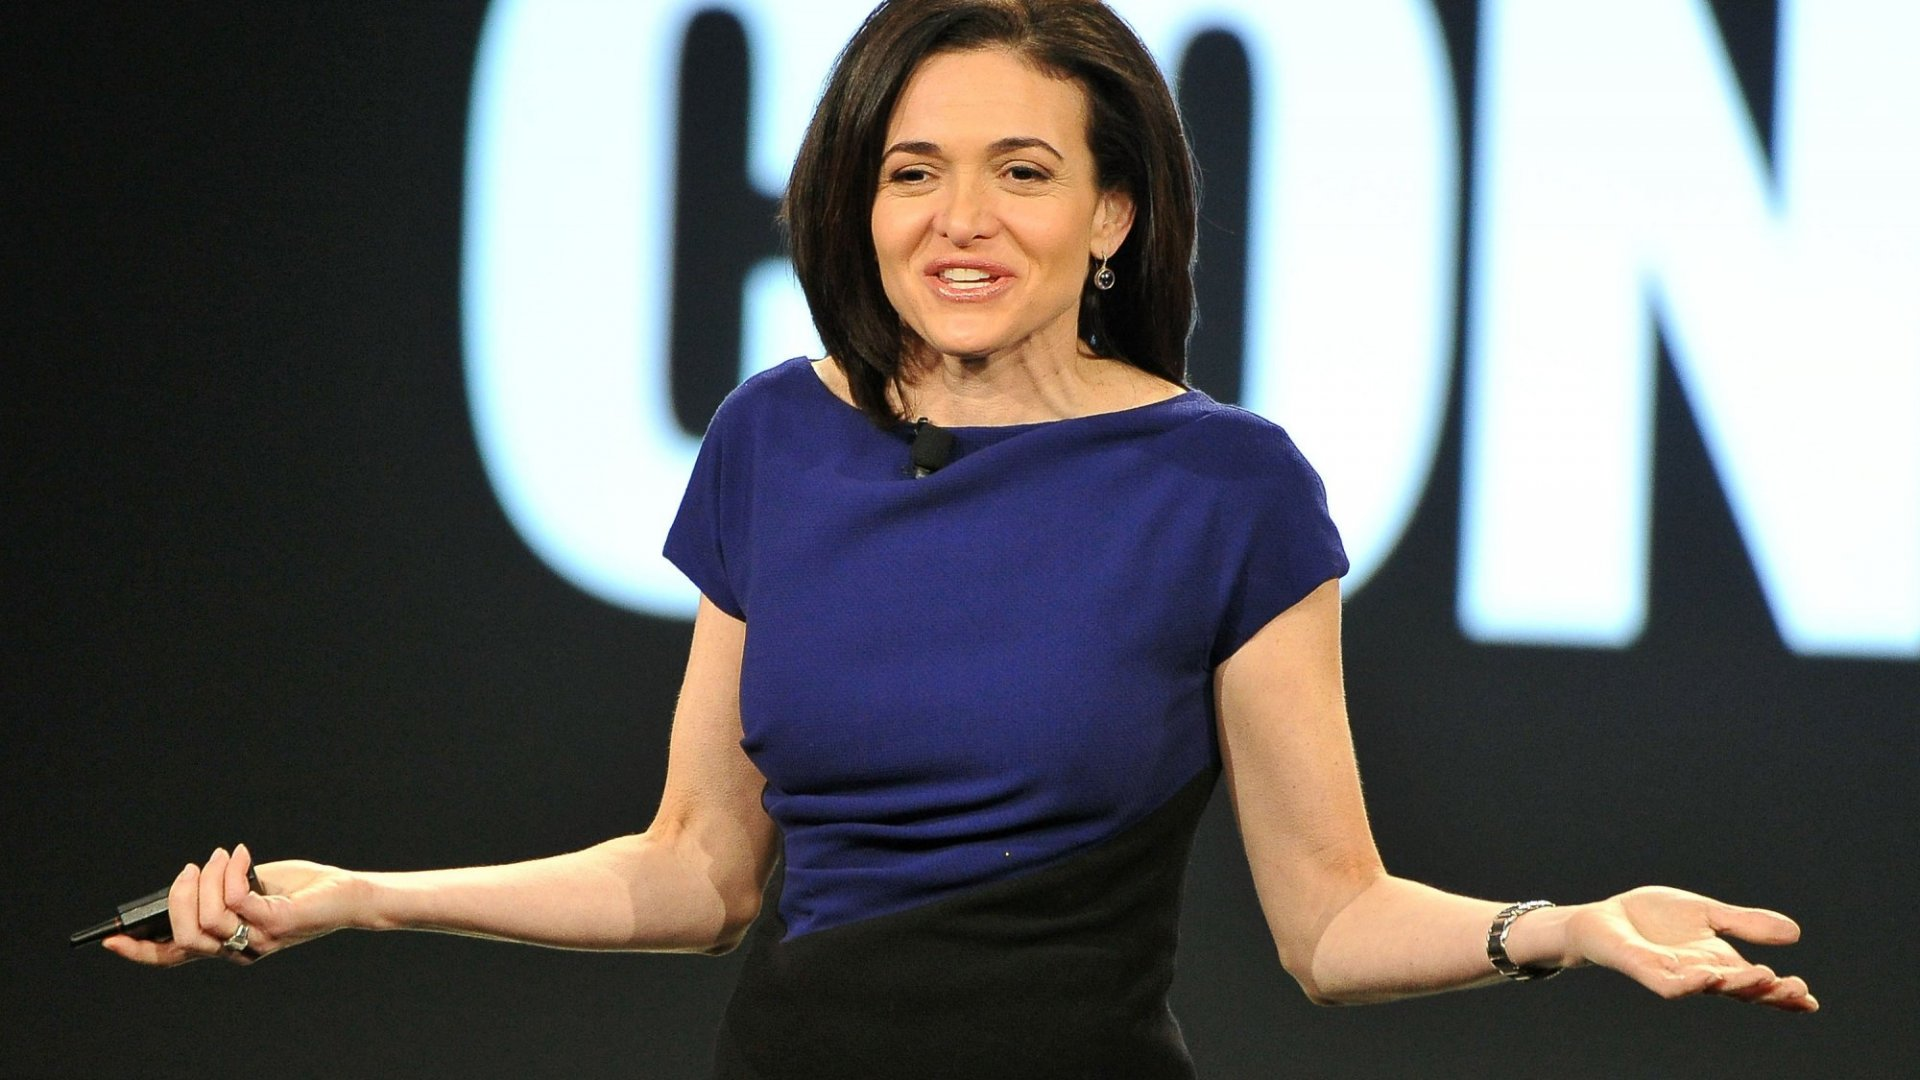 This 1 Little Detail in Sheryl Sandberg's 'Fail Fast' Mantra Will Help Every Startup Win